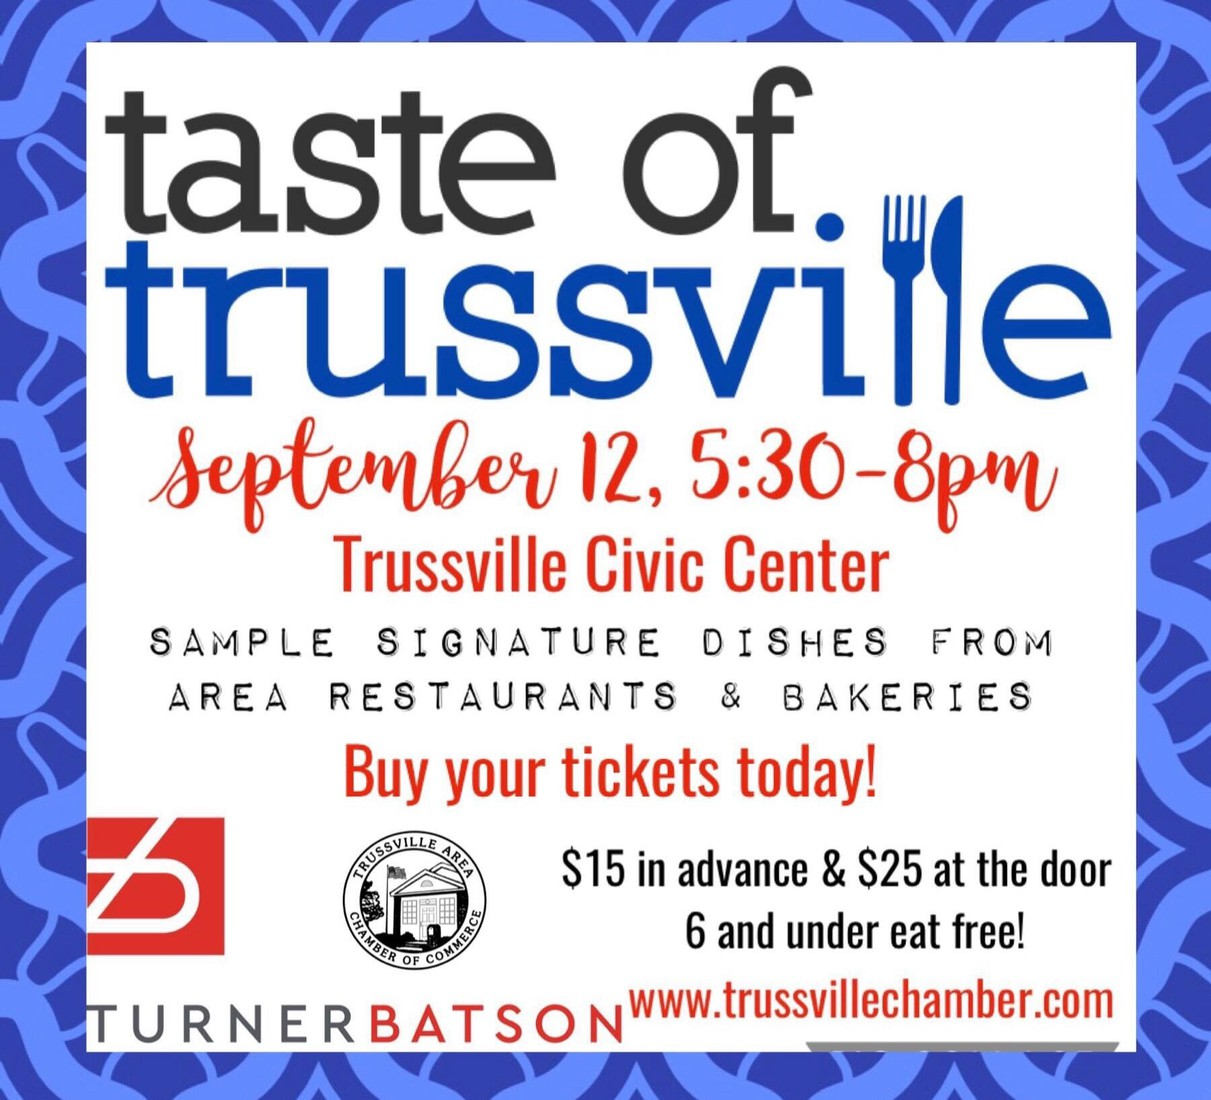 Taste of Trussville September 12, 2019 from 5:30 - 8:00 pm at the Trussville Civic Center.  Tickets are $25.00 at door.  www.trussvillechamber.com.  A sample signature dishes from area restaurants.